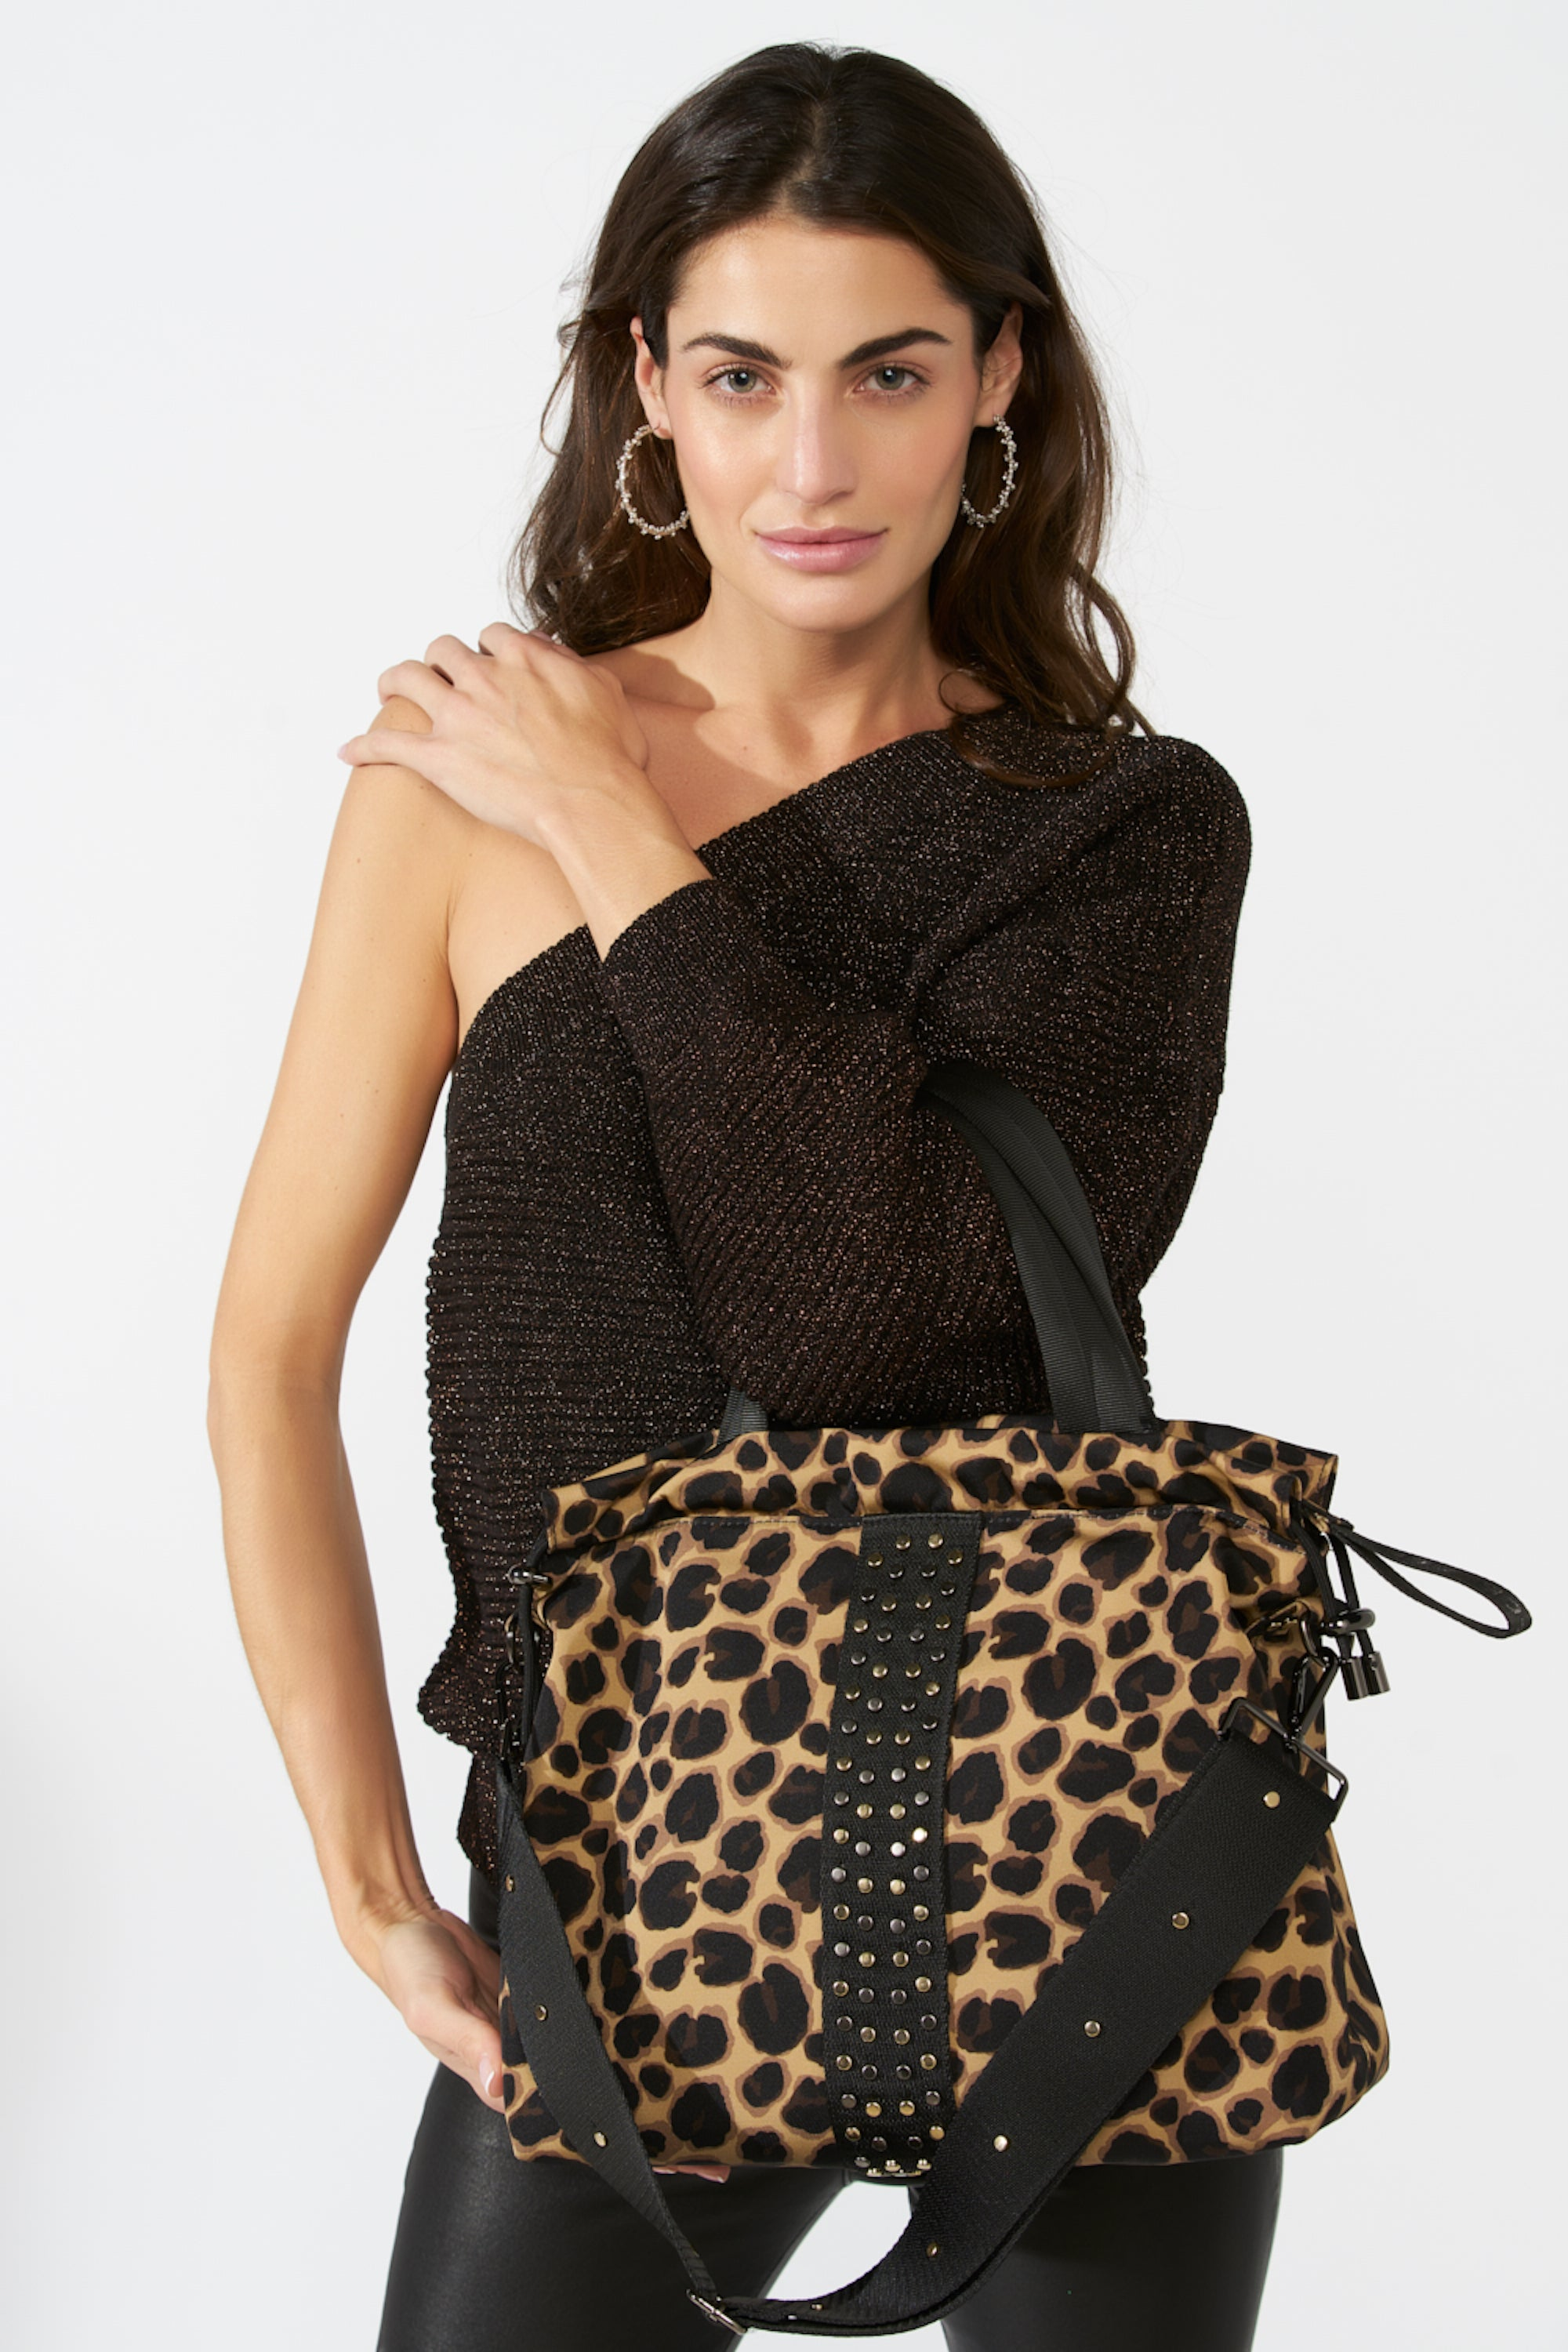 ACE Urban Leopard Tote Bag